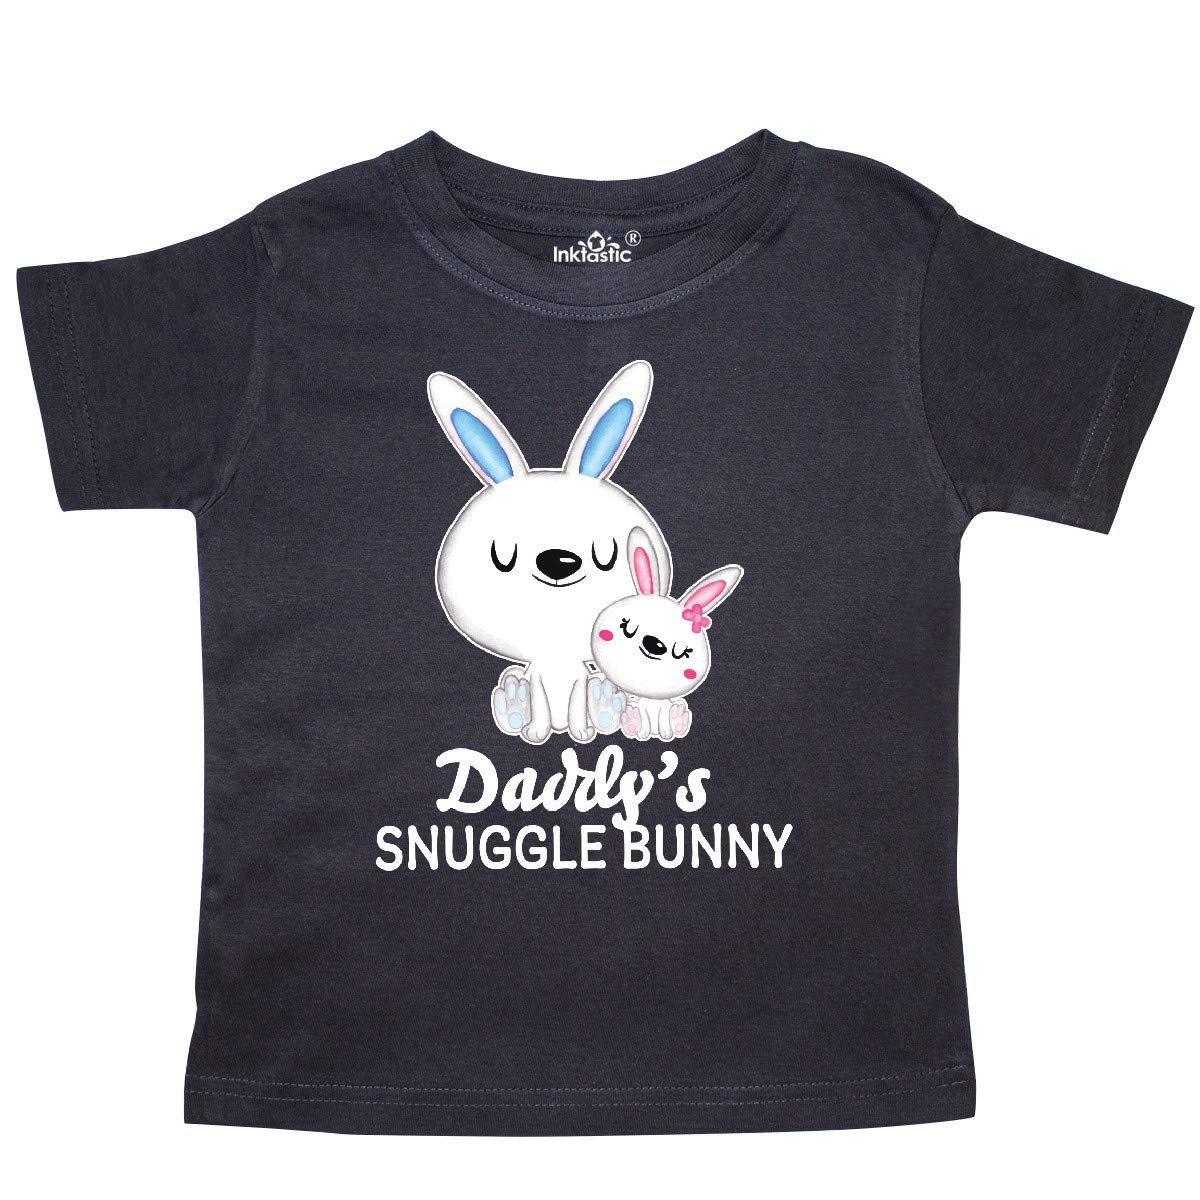 inktastic Daddys Snuggle Bunny Easter Toddler T-Shirt